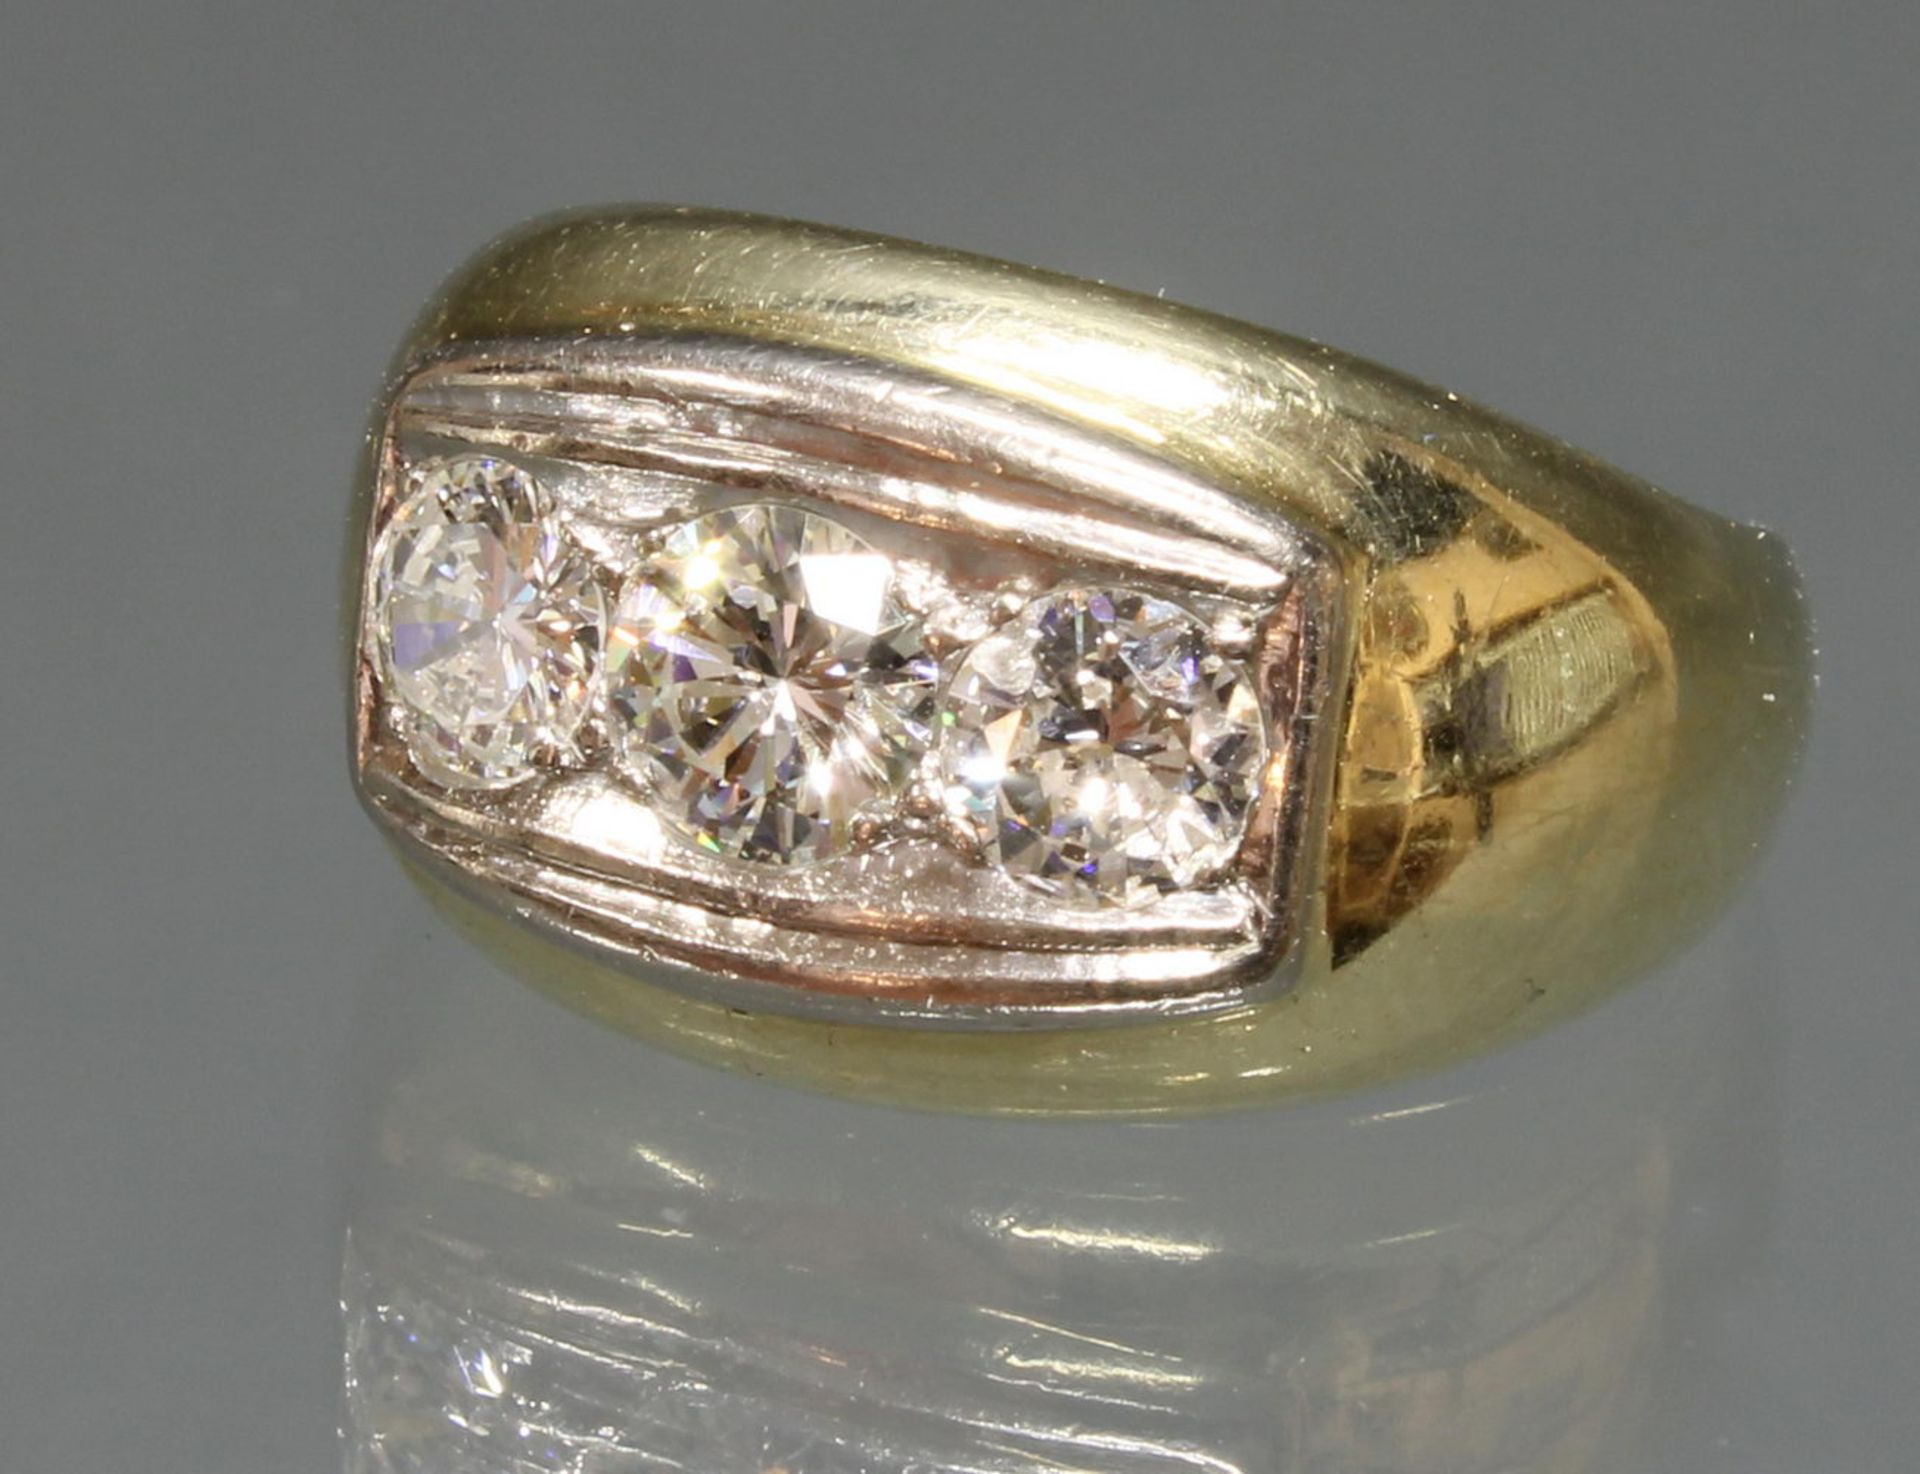 Ring, GG 585, 1 Brillant ca. 0.45 ct., 1 Brillant ca. 0.25 ct., beide etwa fw-w/lpr.-vvs, 1 Diamant